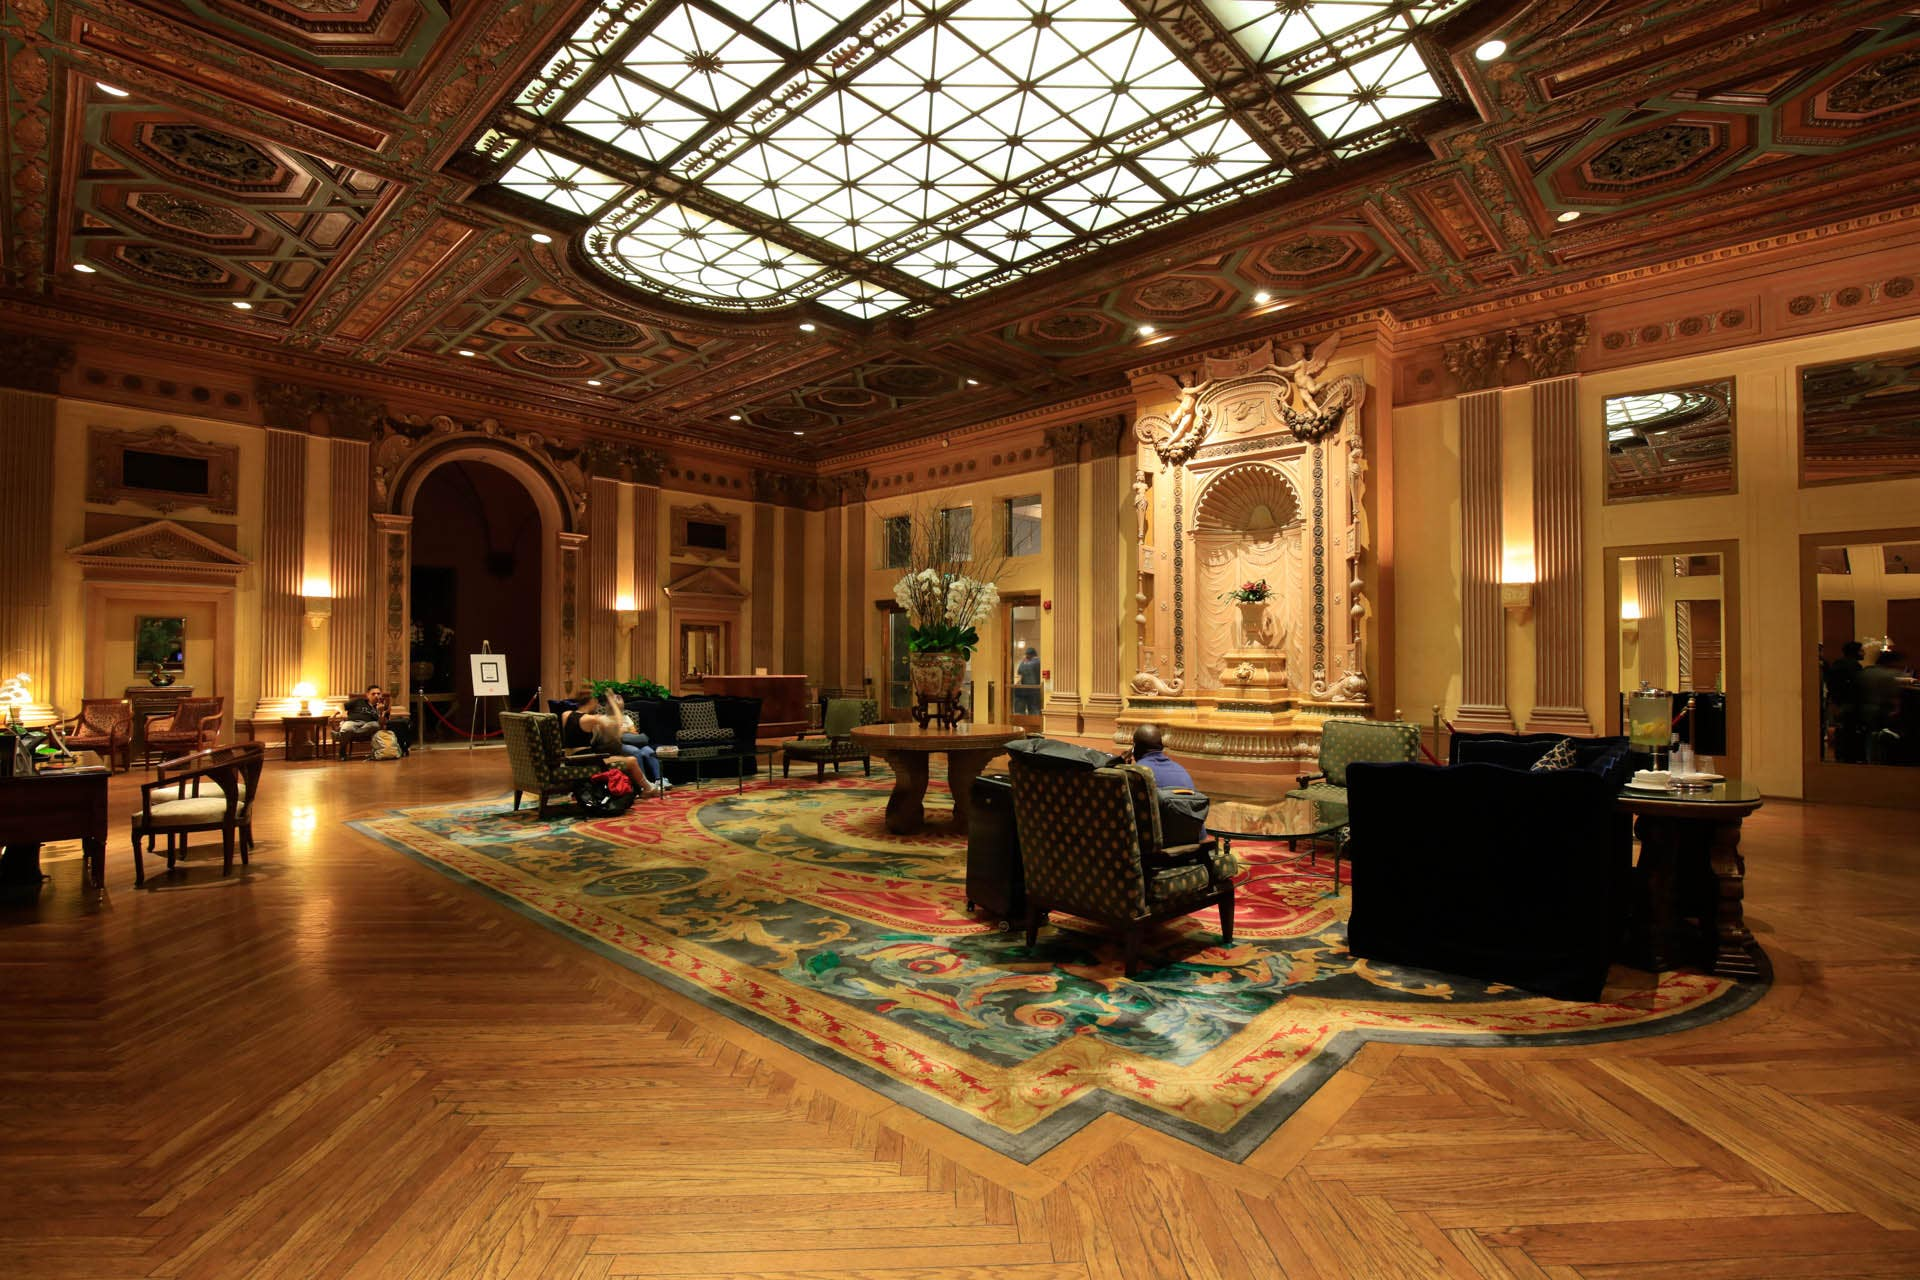 Lobby of the Millennium Biltmore Hotel in DTLA